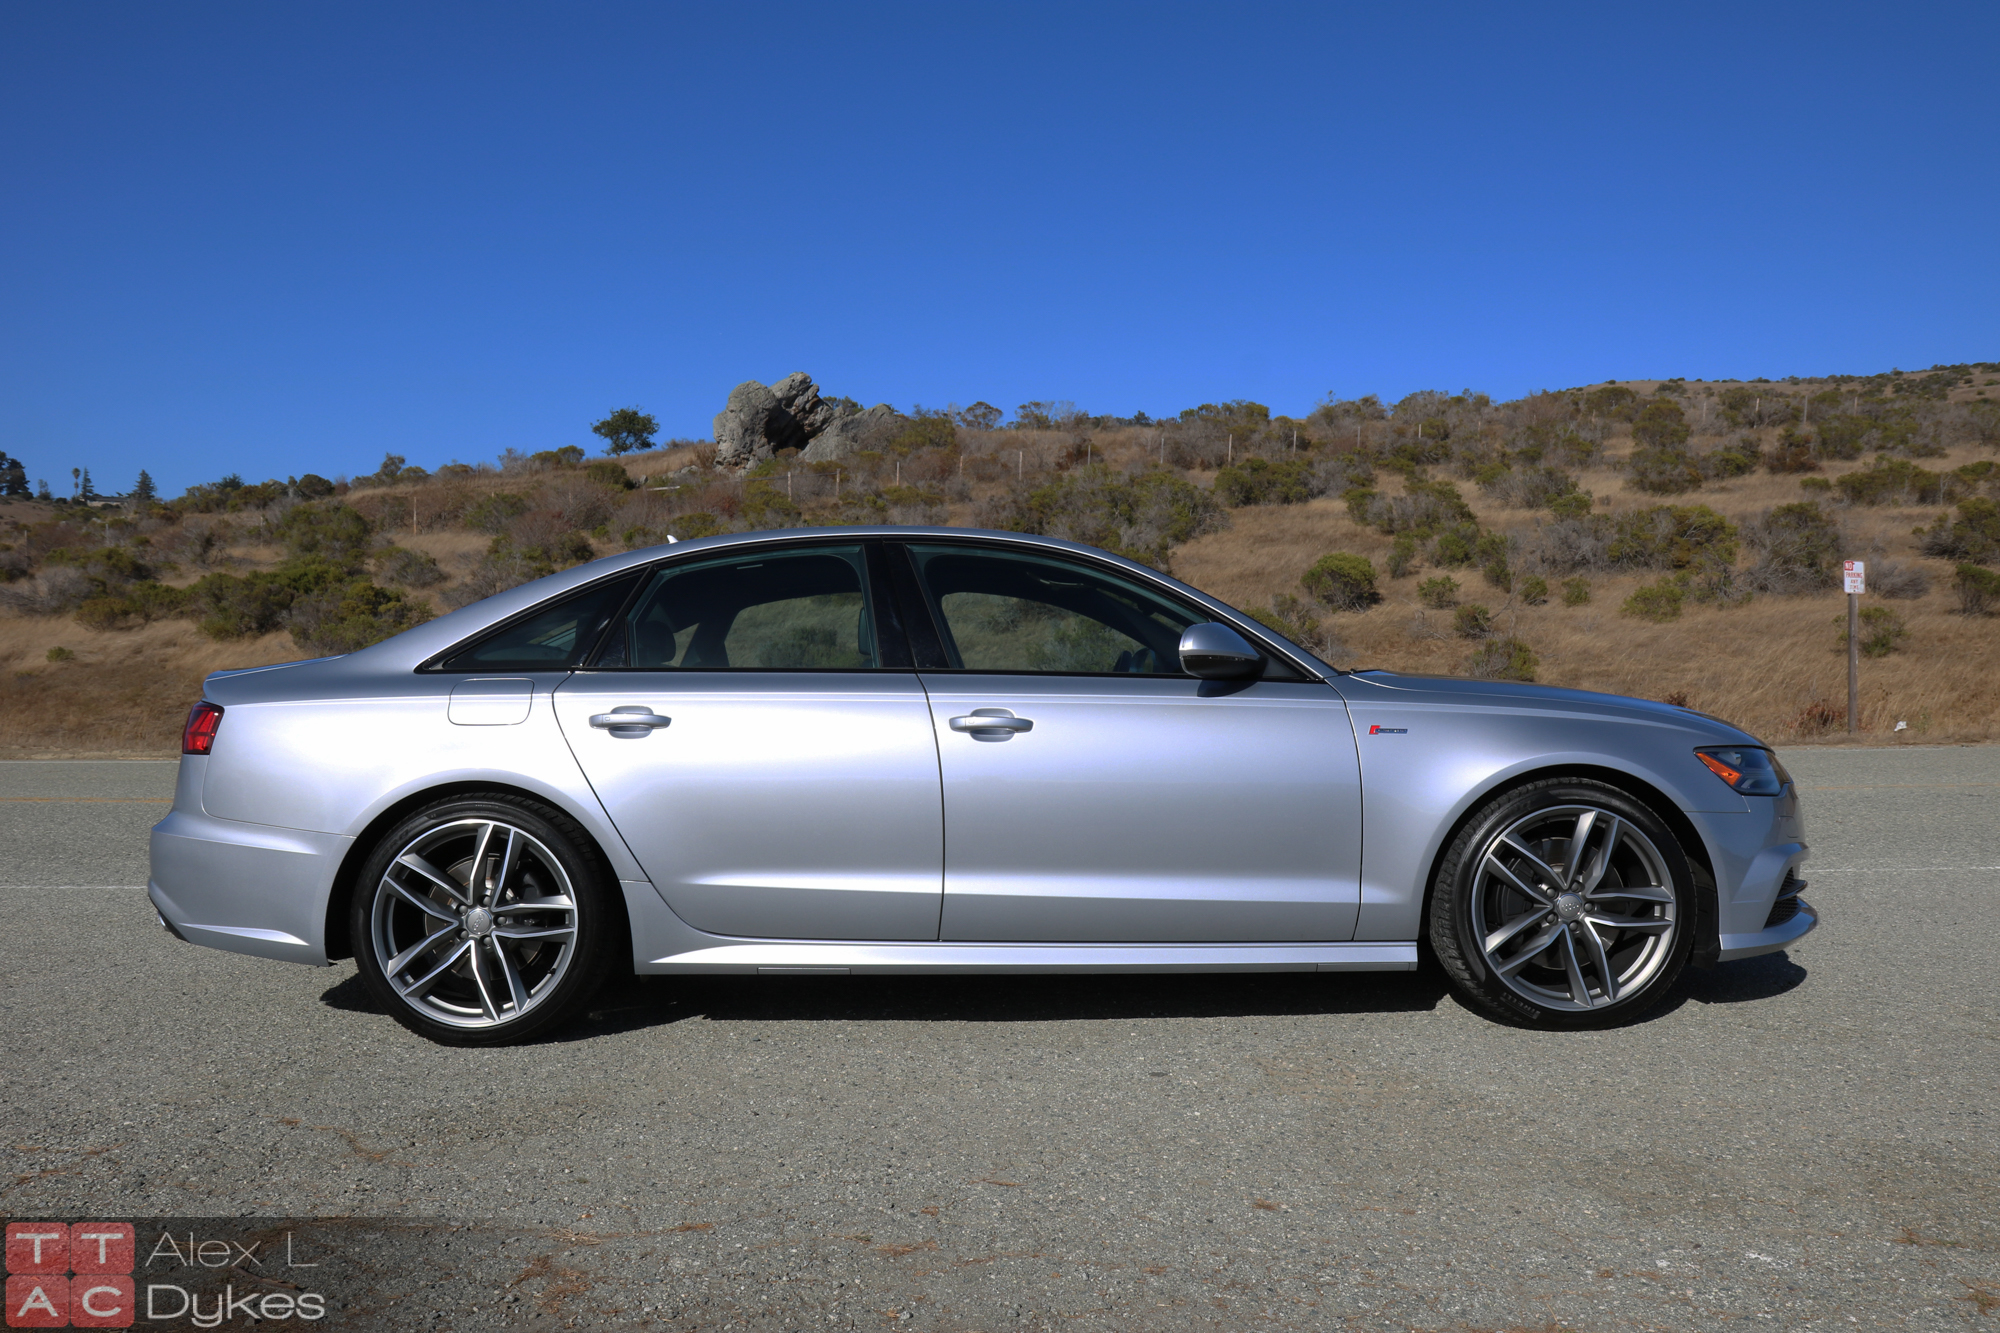 2016 Audi A6 3.0T Review (With Video)